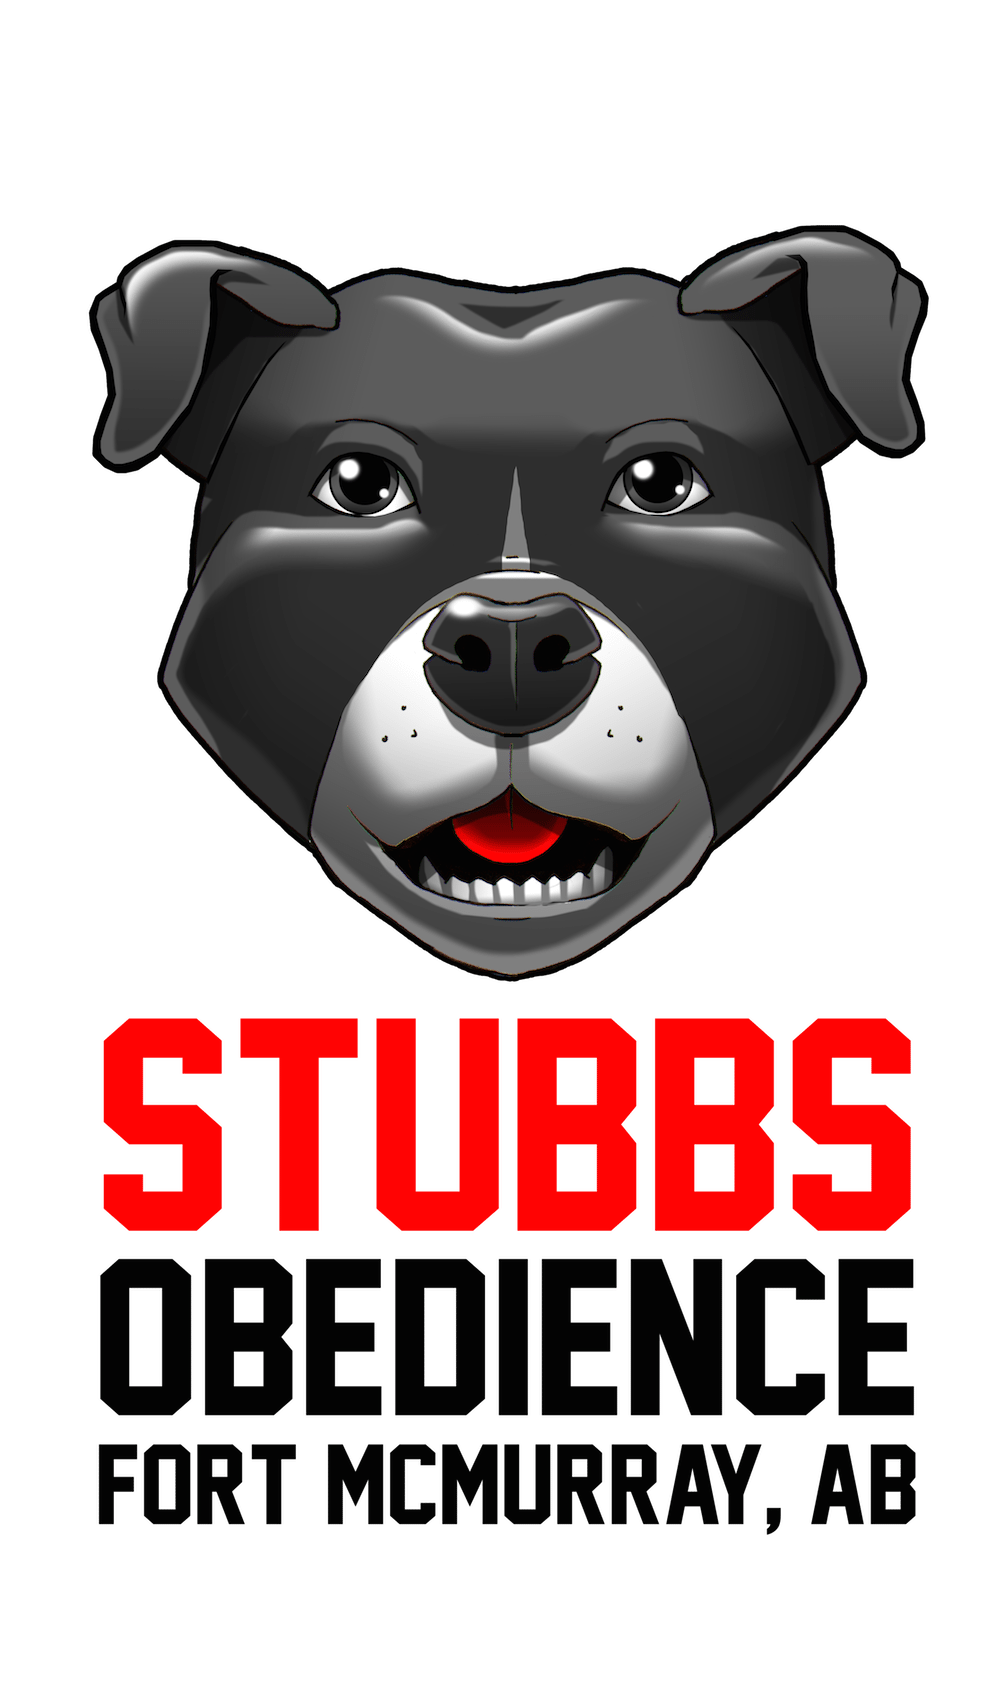 Vertical Stubbs Obedience Logo by Clay Graham via ArtCorgi